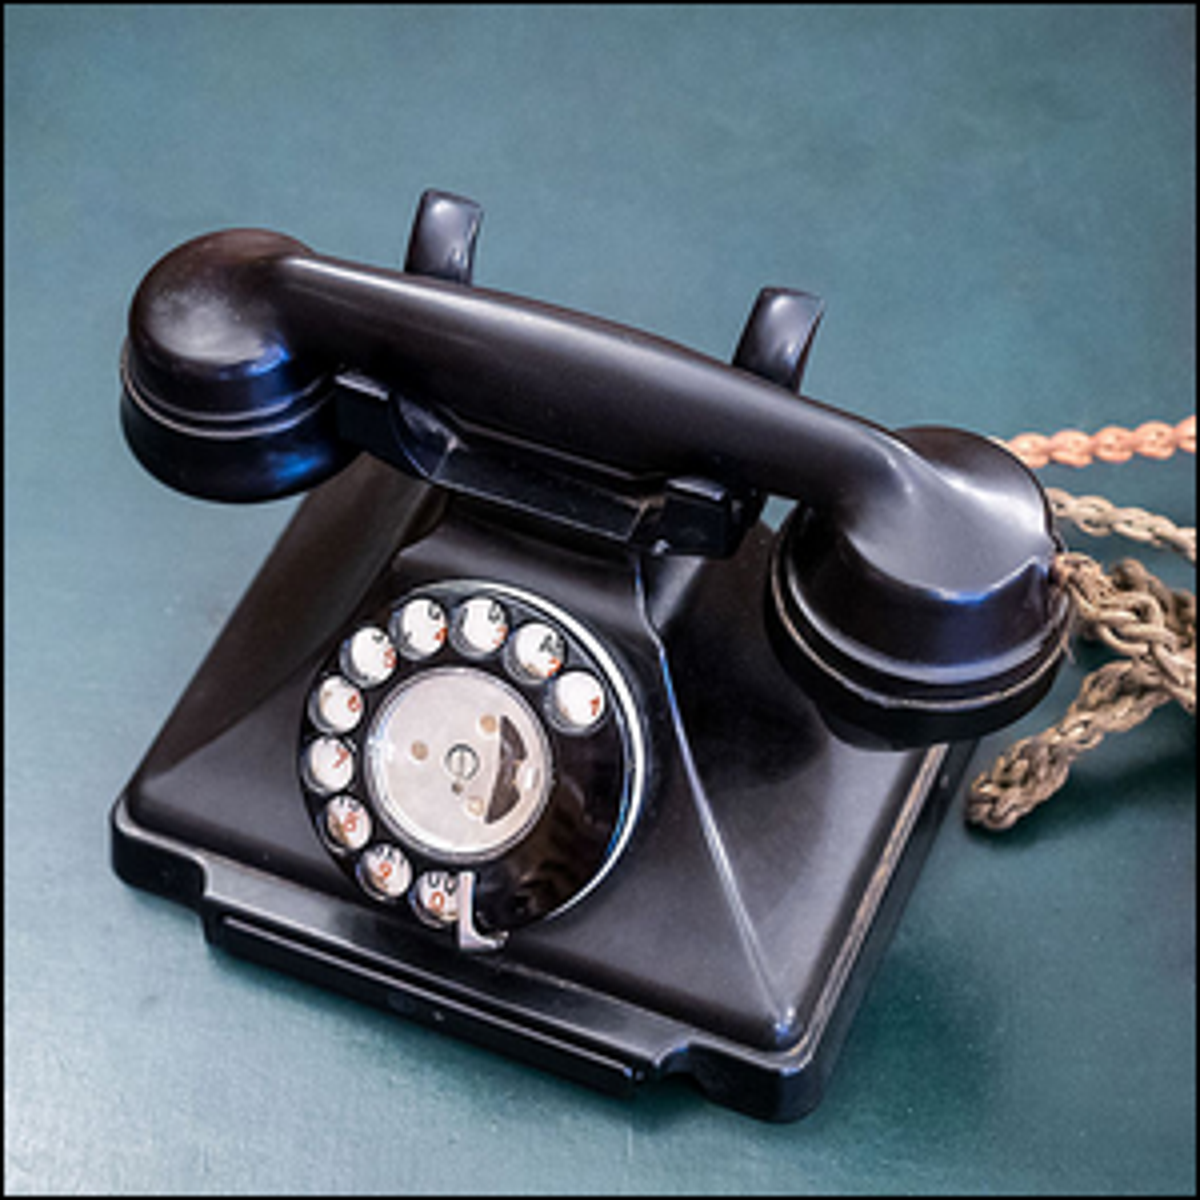 An old Bakelite telephone located at Bletchley Park, Bletchley, Milton Keynes, Buckinghamshire, England.